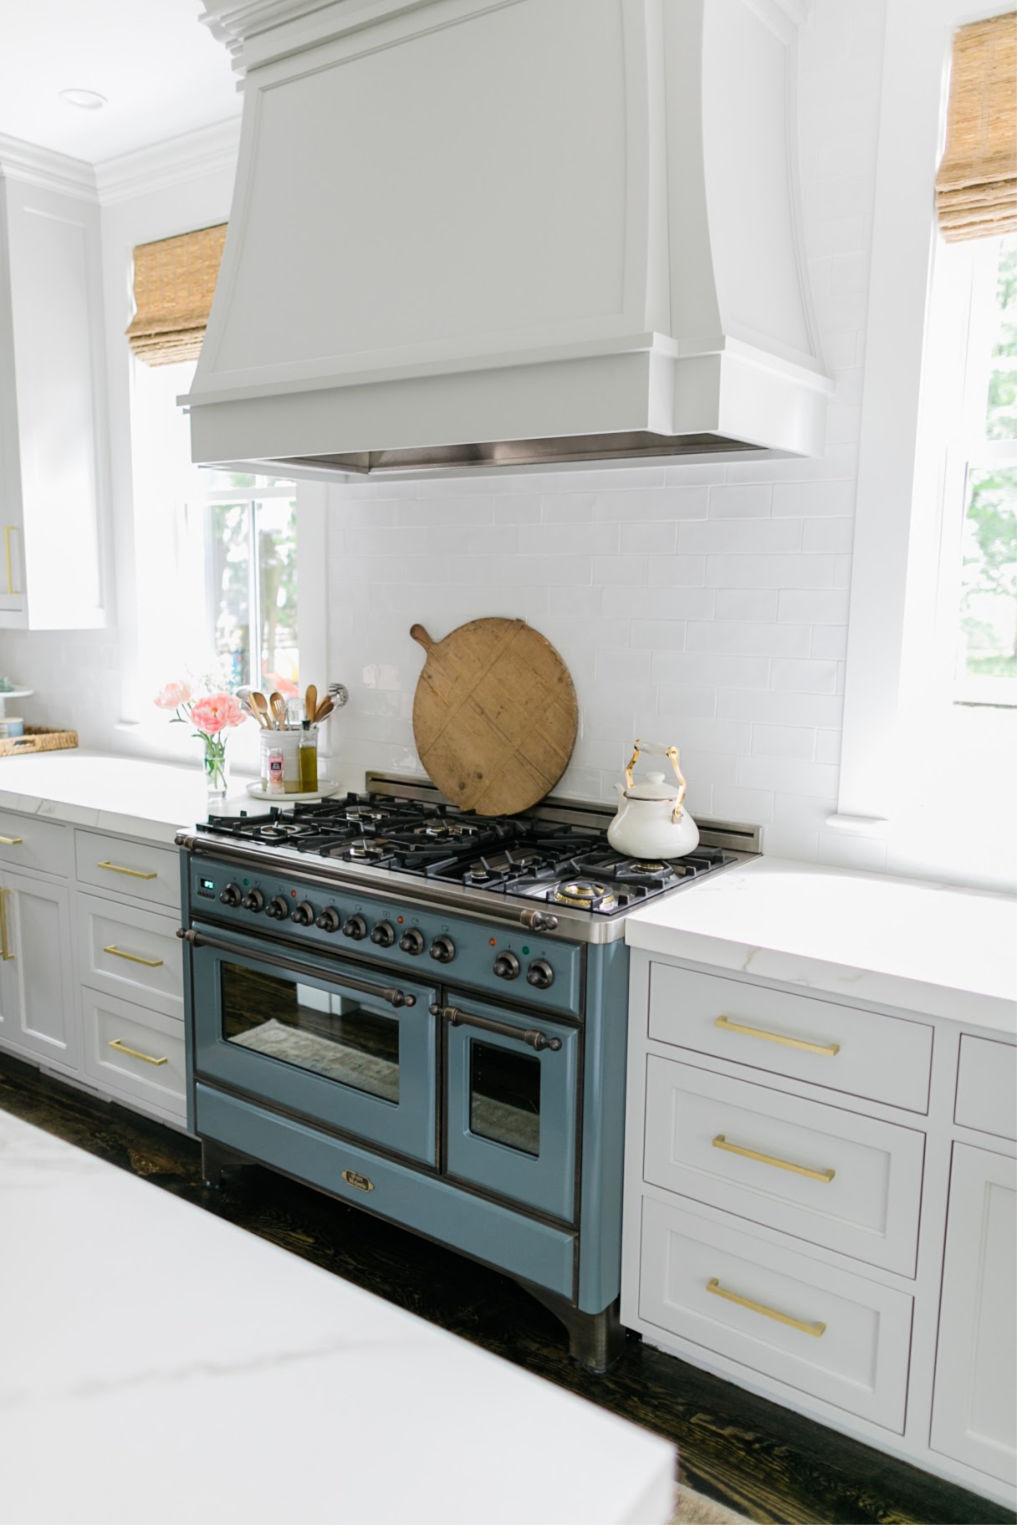 Beautiful white kitchen with Ilve Majestic stove in blue kellyelko.com #kitchen #kitchenoven #vintagekitchen #interiordecorate #interiordesign #kitchenreno #stove